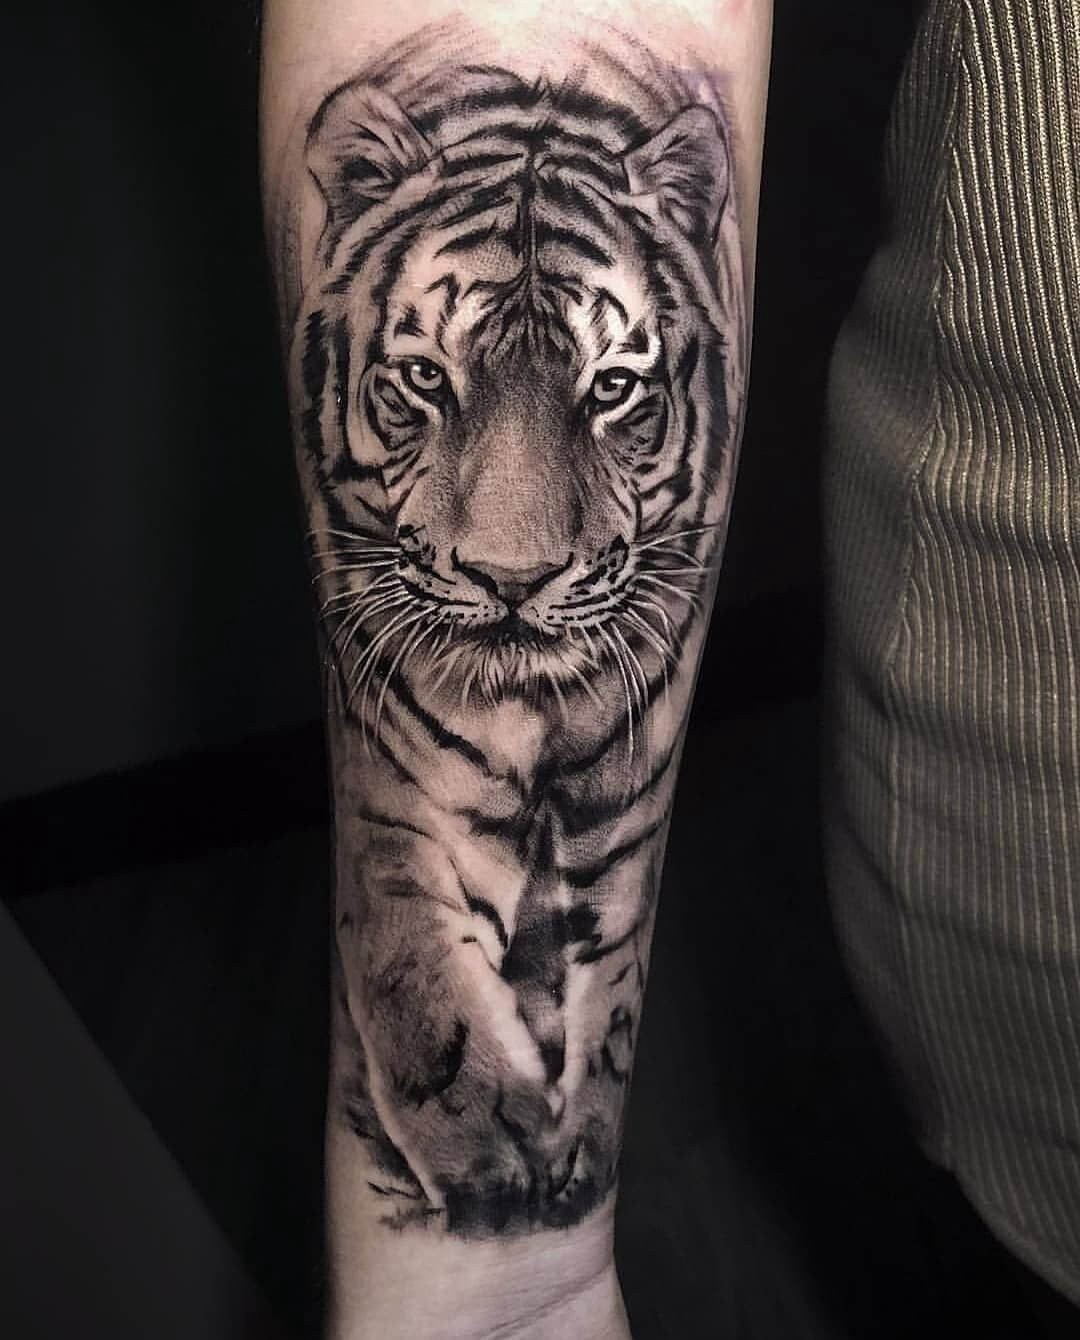 Tiger Tattoos And Their Meanings Tiger Tattoos Meaning And Symbolism By Jhaiho Medium